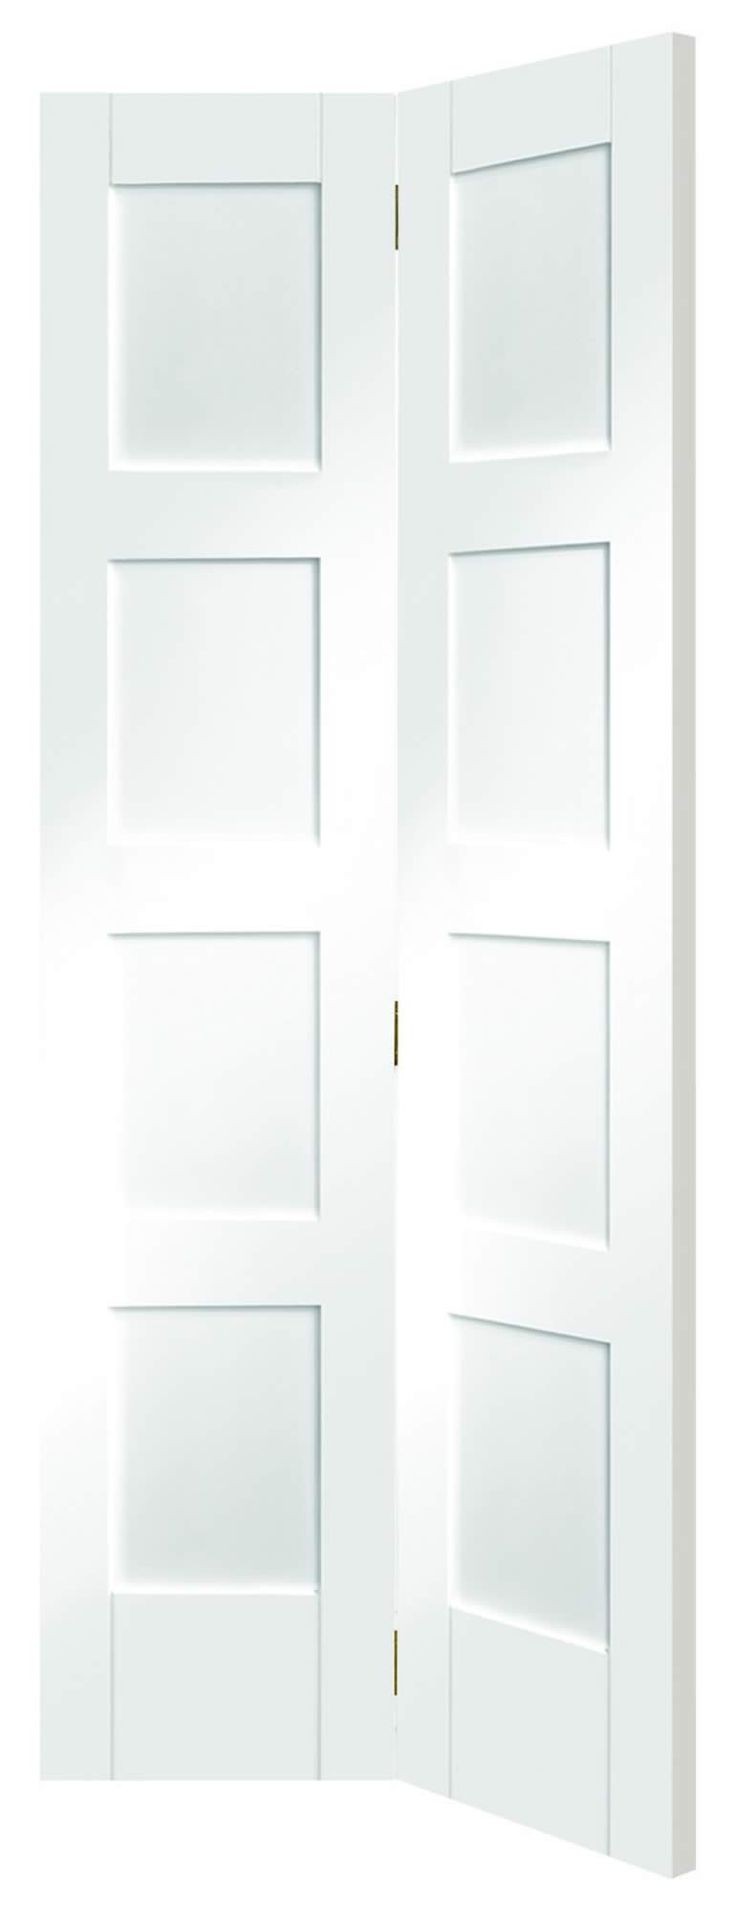 Bi fold doors for bathroom - Shaker 4 Panel White Pre Primed Clear Glazed Bi Fold Internal Doors